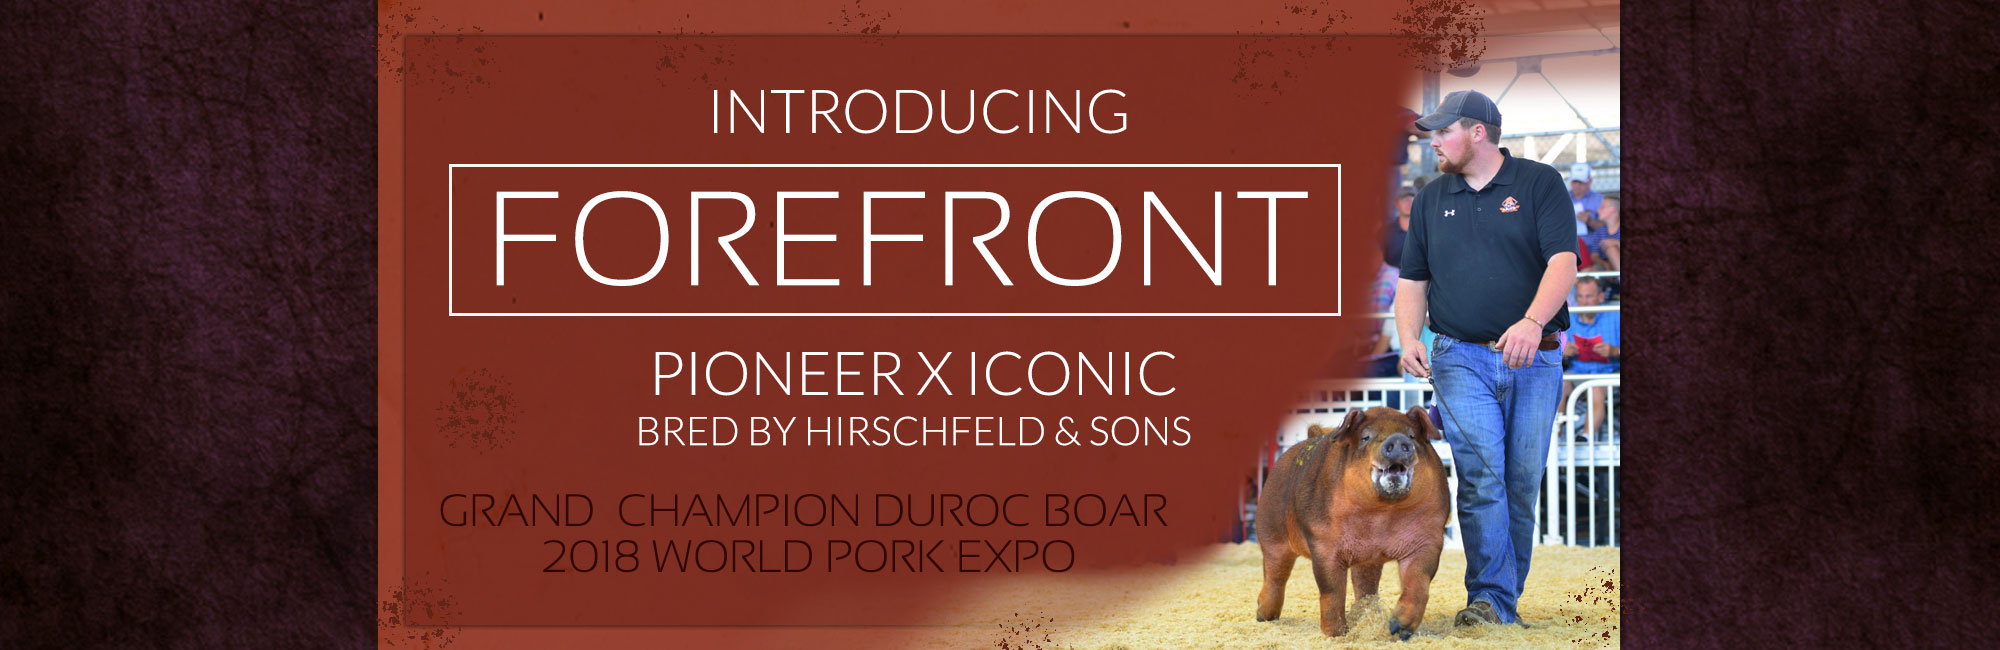 Introducing Forefront